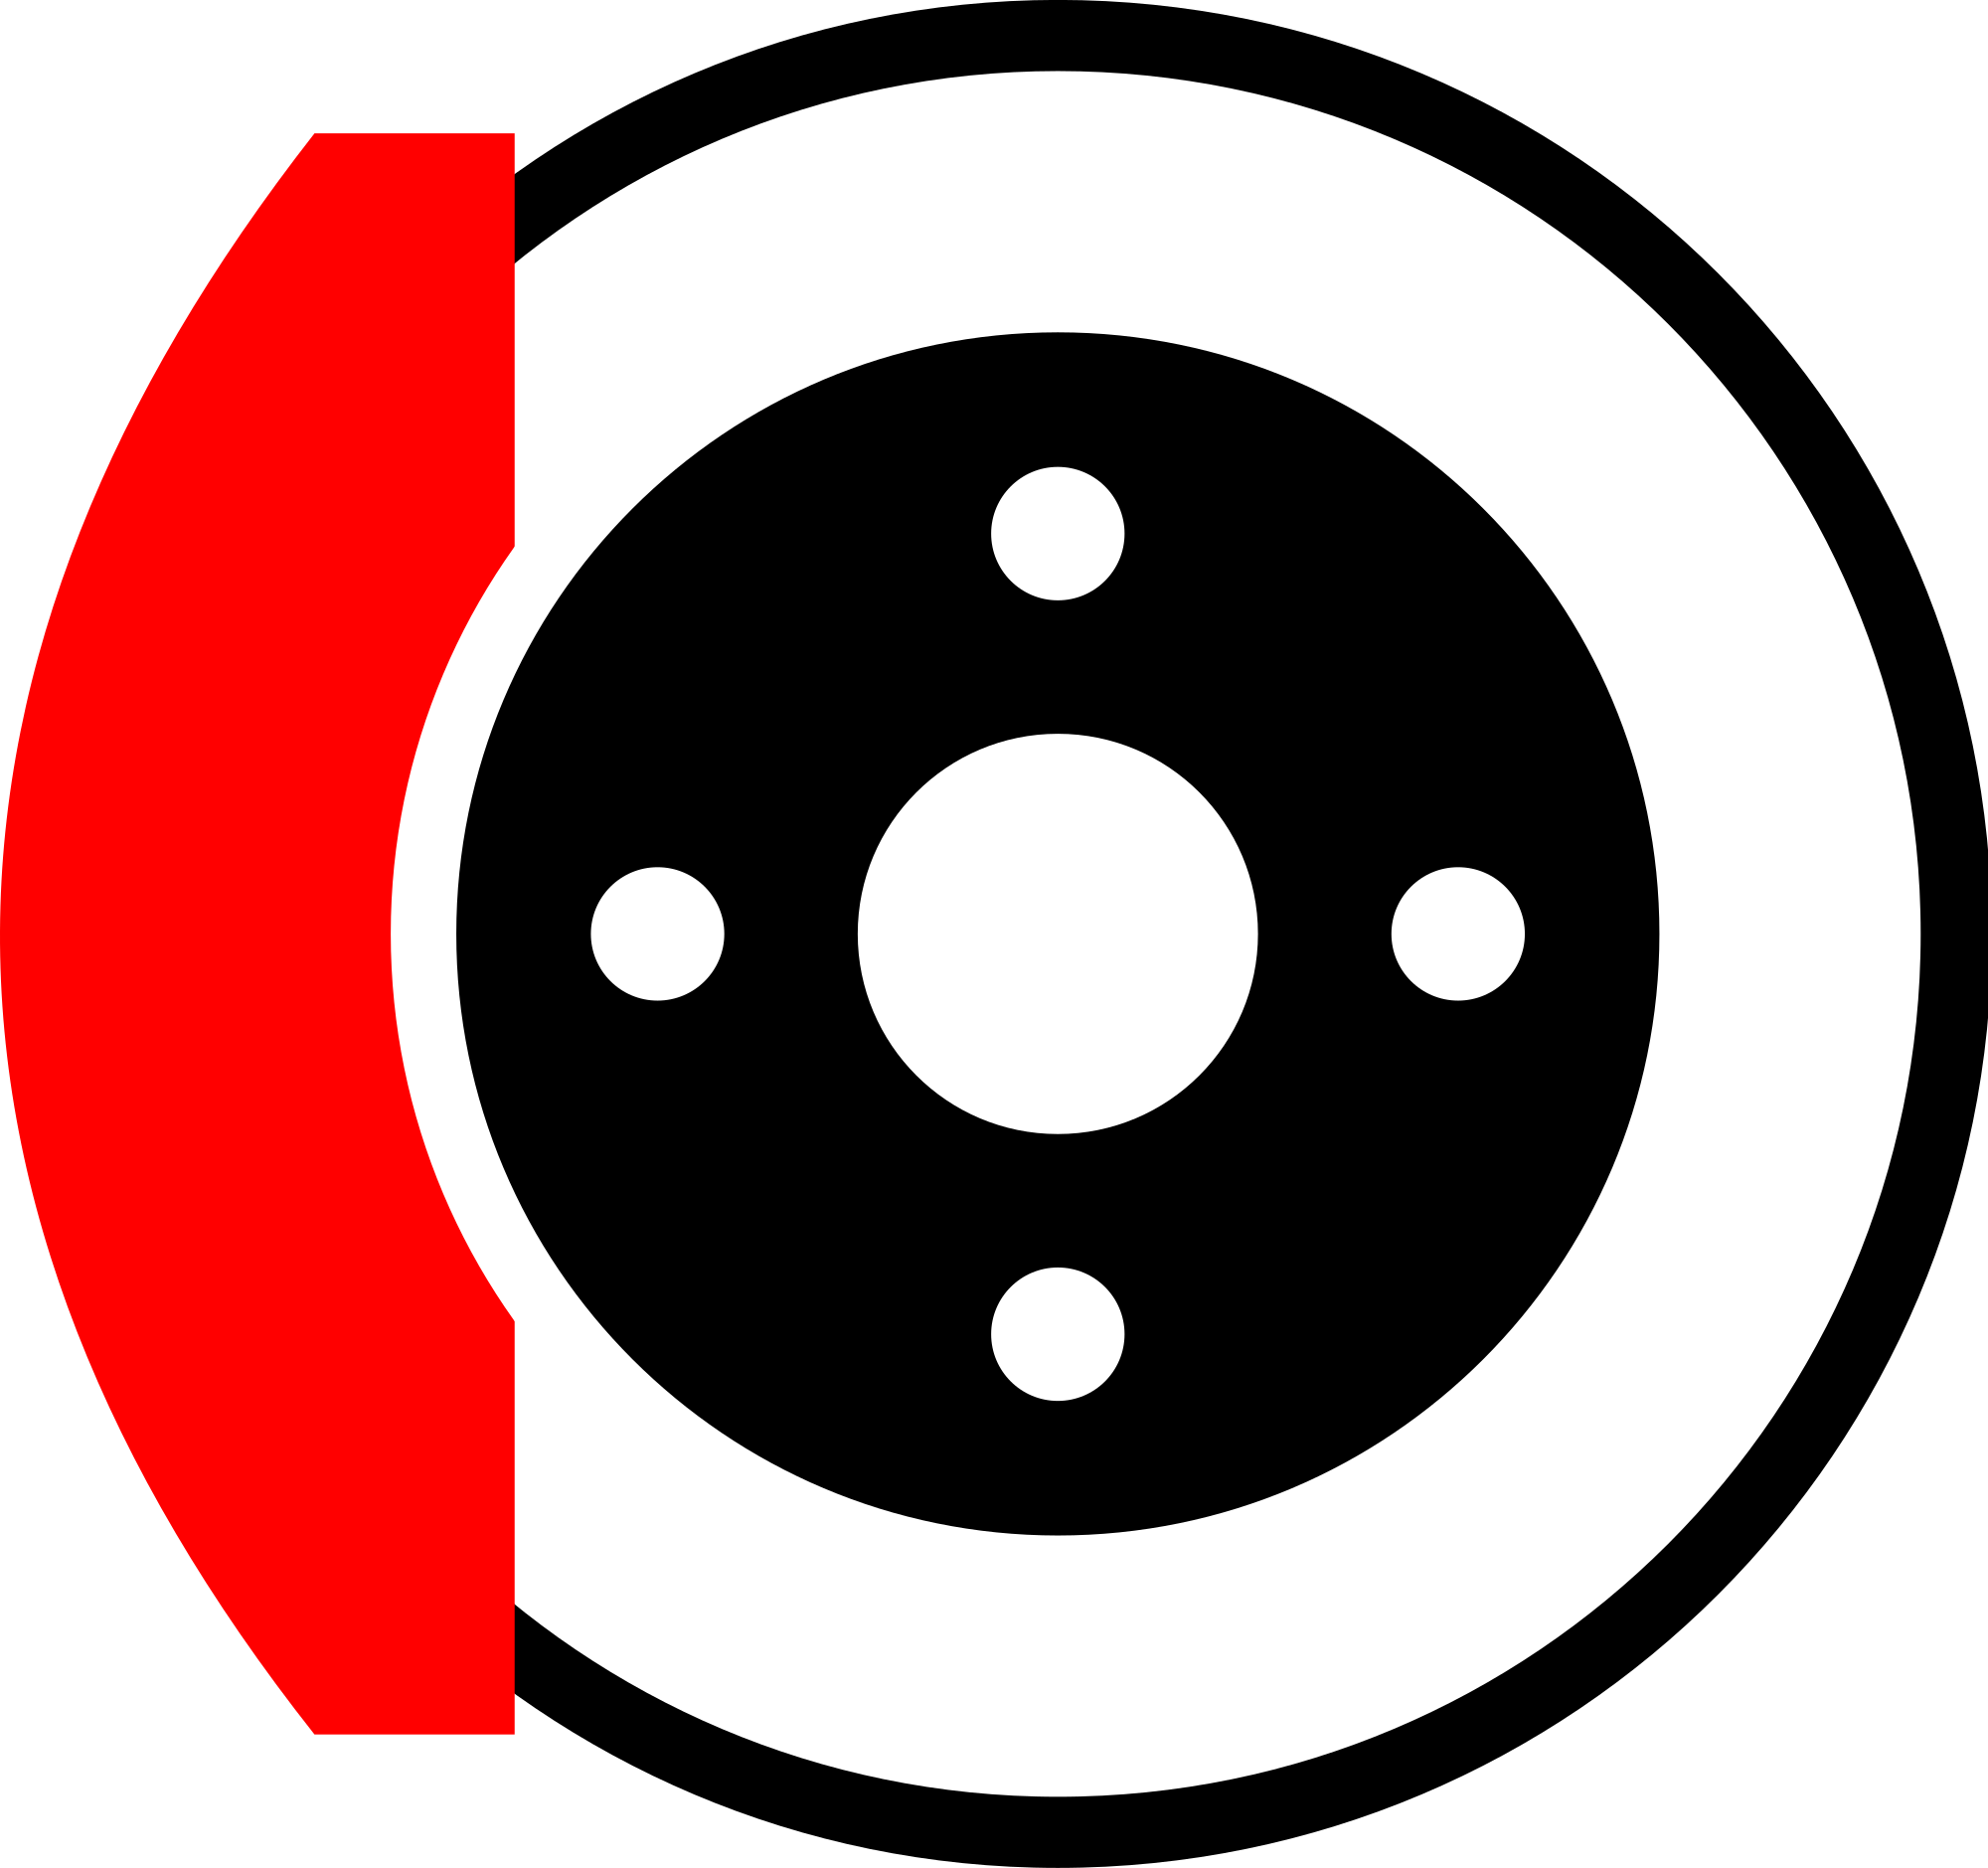 Car brake clipart picture black and white File:Car brake icon.svg - Wikimedia Commons picture black and white